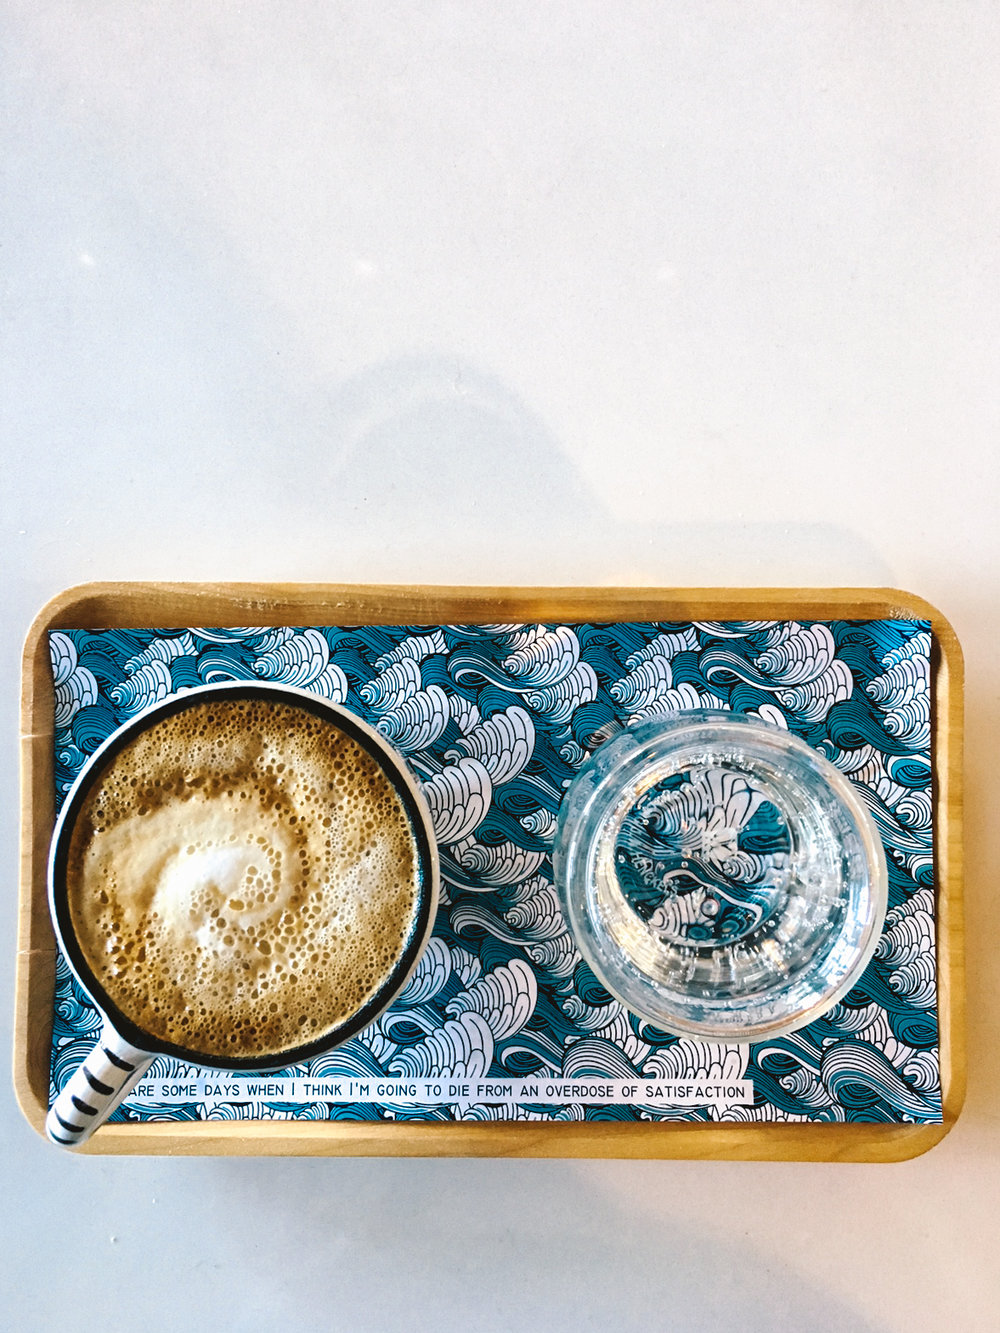 """There are some days when I think I'm going to die from an overdose of satisfaction."" My macchiato came on this adorable plate with a picture and a quote on it."